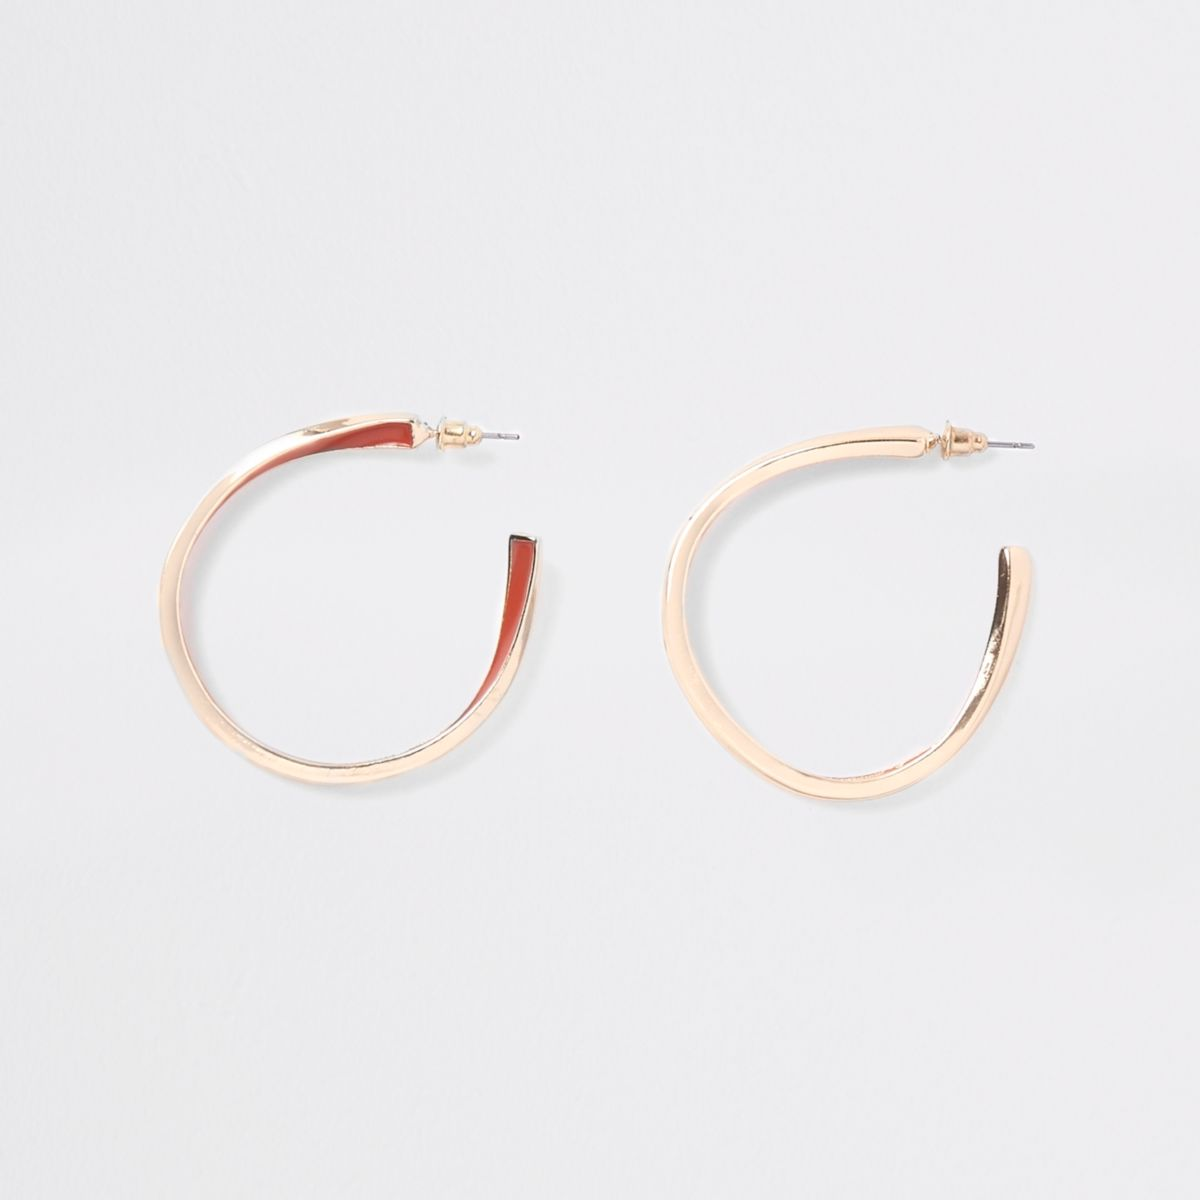 Gold tone orange enamel inlay hoop earrings